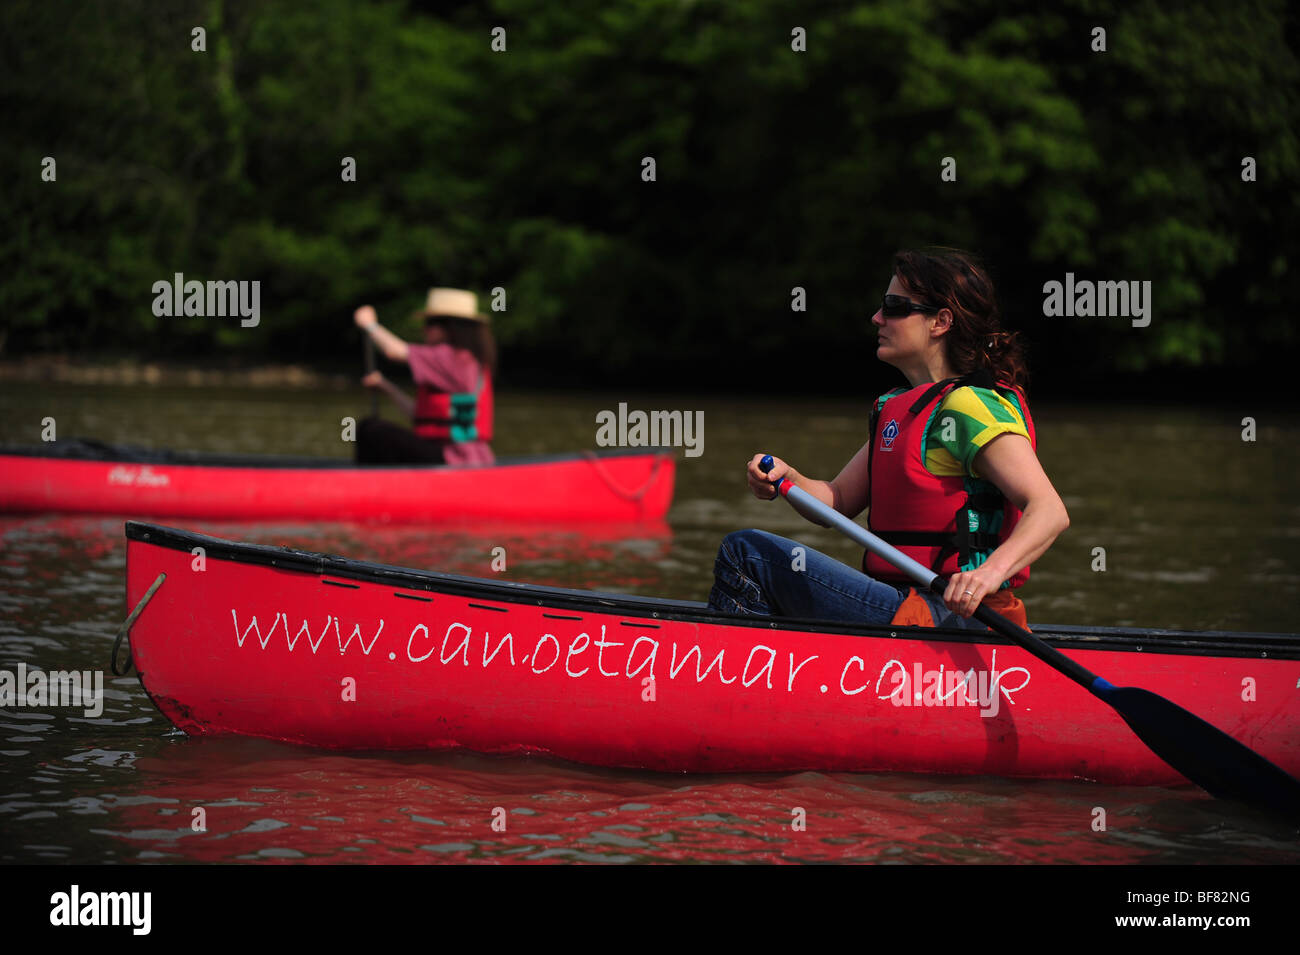 canoeing and kayaking on the river Tamar, on the Devon and Cornwall border, UK Stock Photo